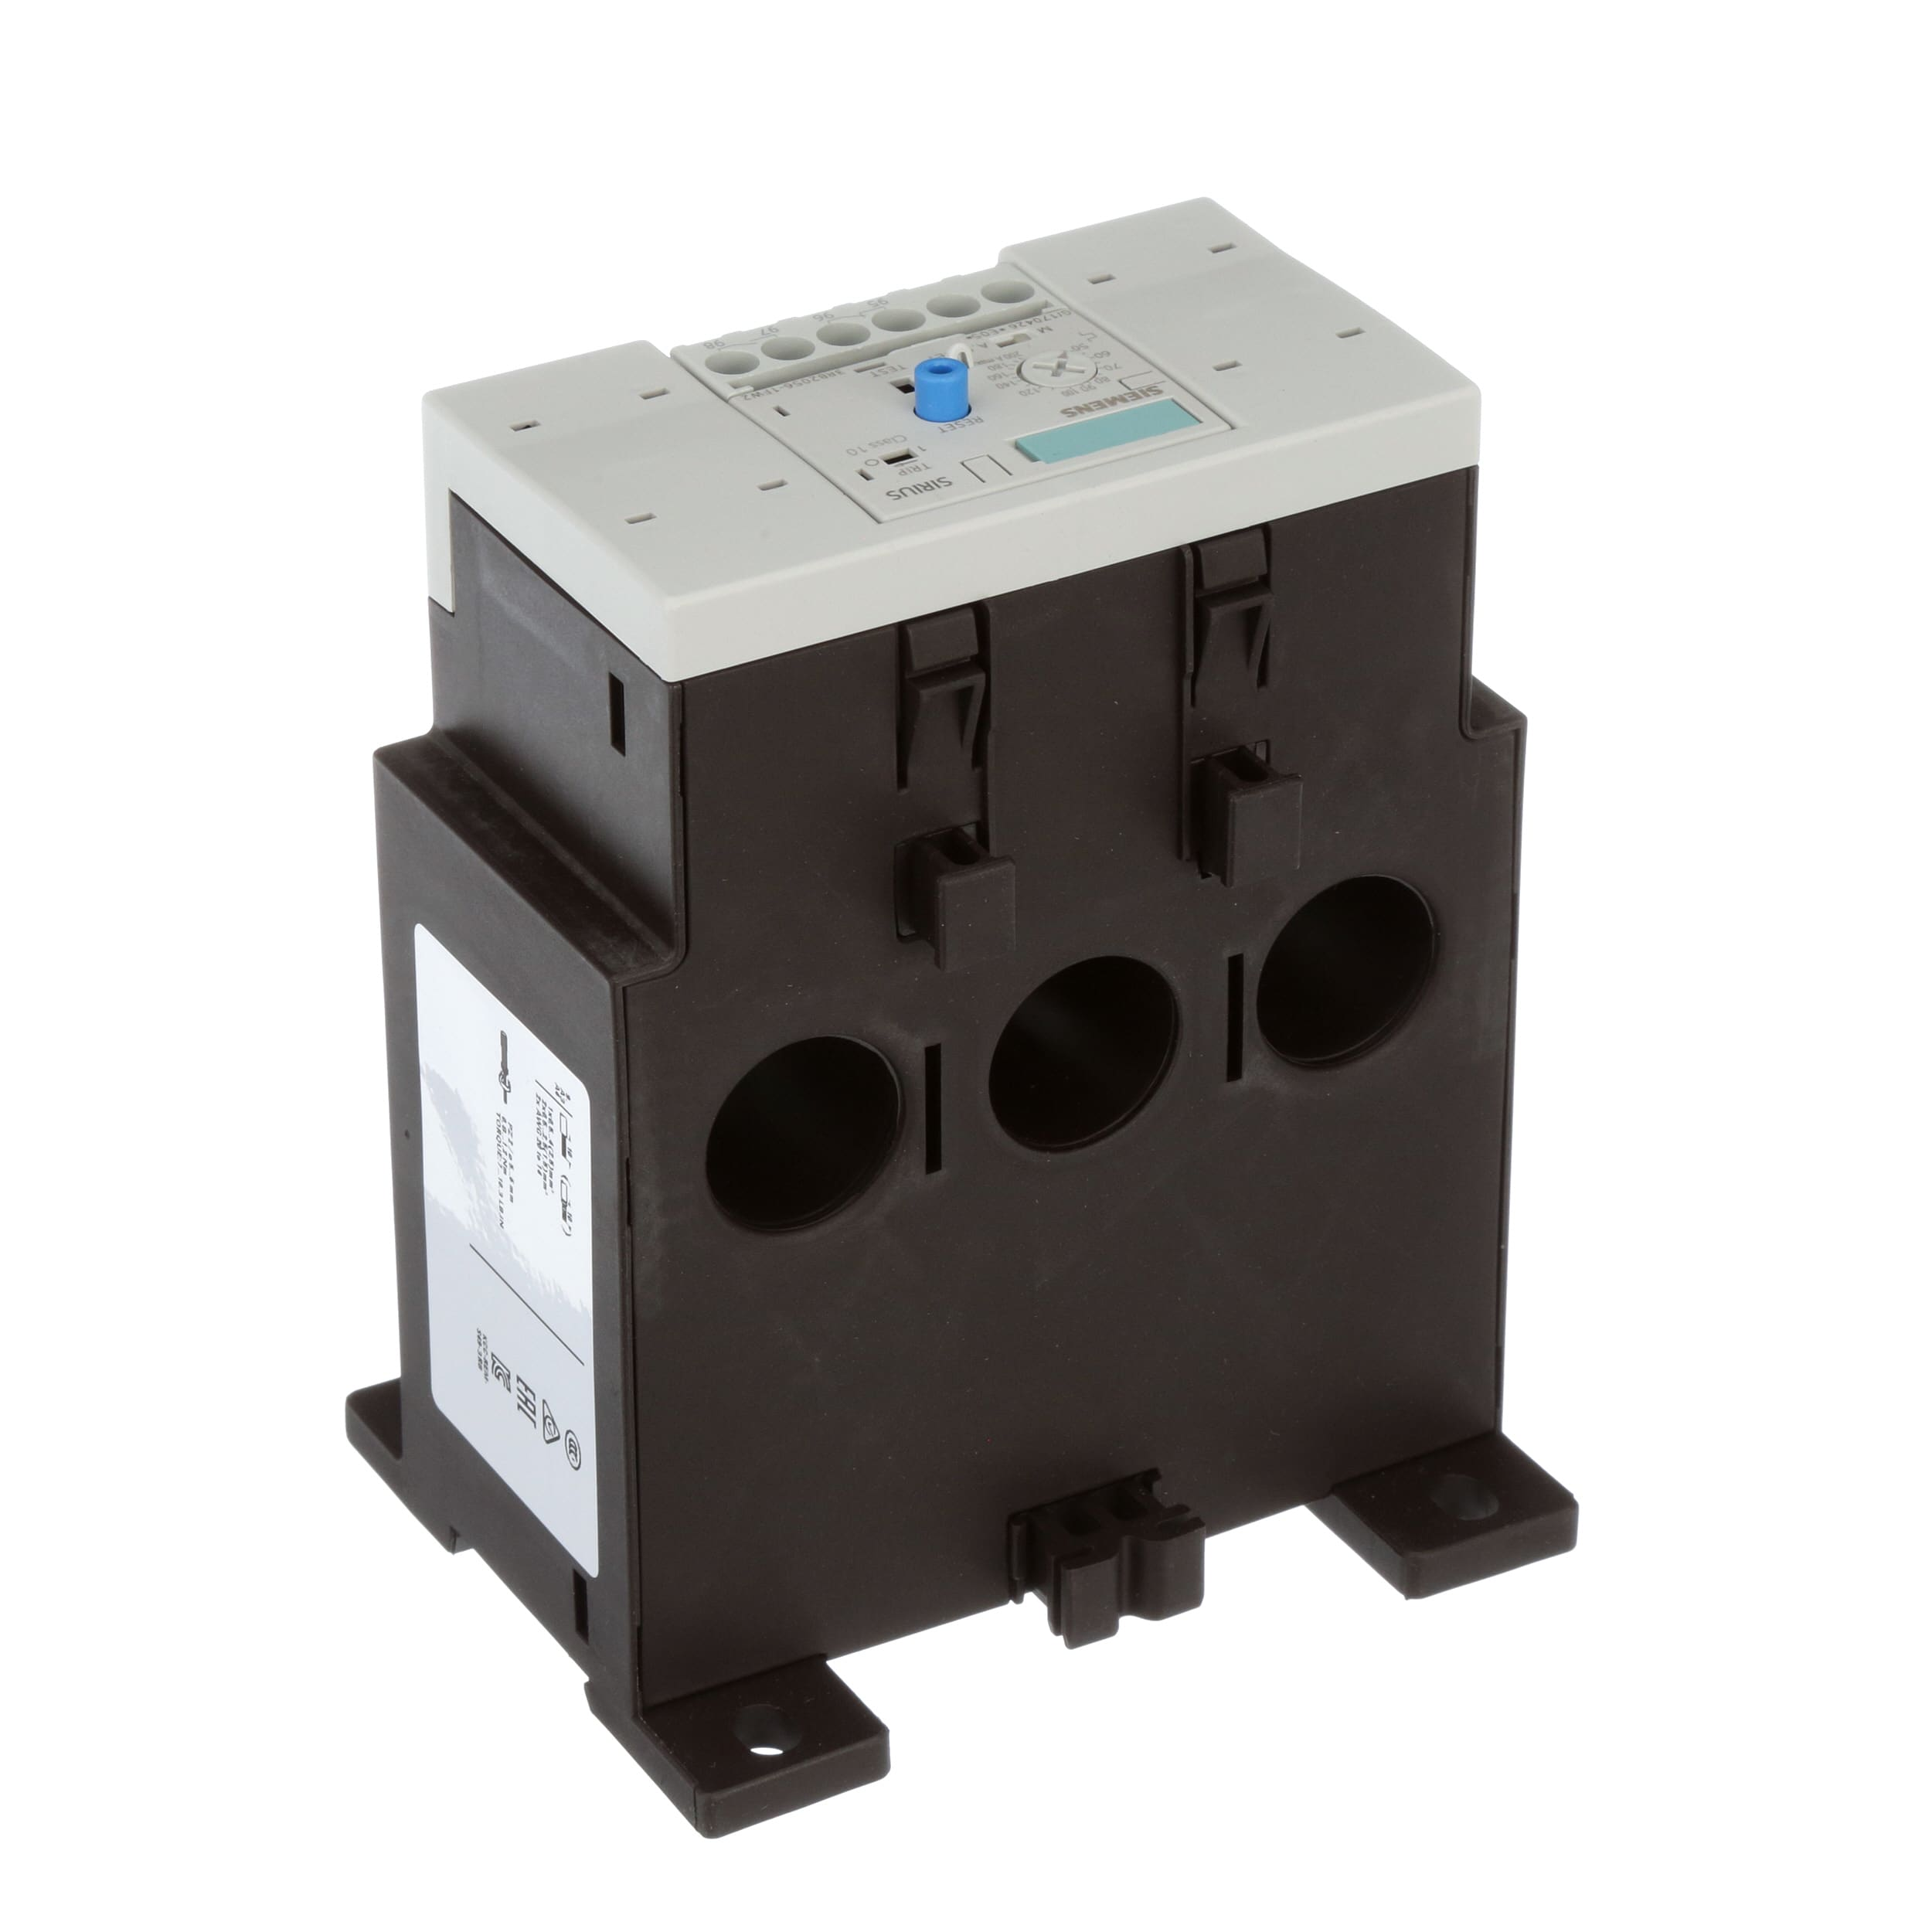 Siemens 3rb2056 1fw2 Overload Relay Ssr Sz S6 3 P 50 200a Driving Lights Wiring Diagram Class 10 Screw Conn Manual Auto Reset Ip20 Allied Electronics Automation